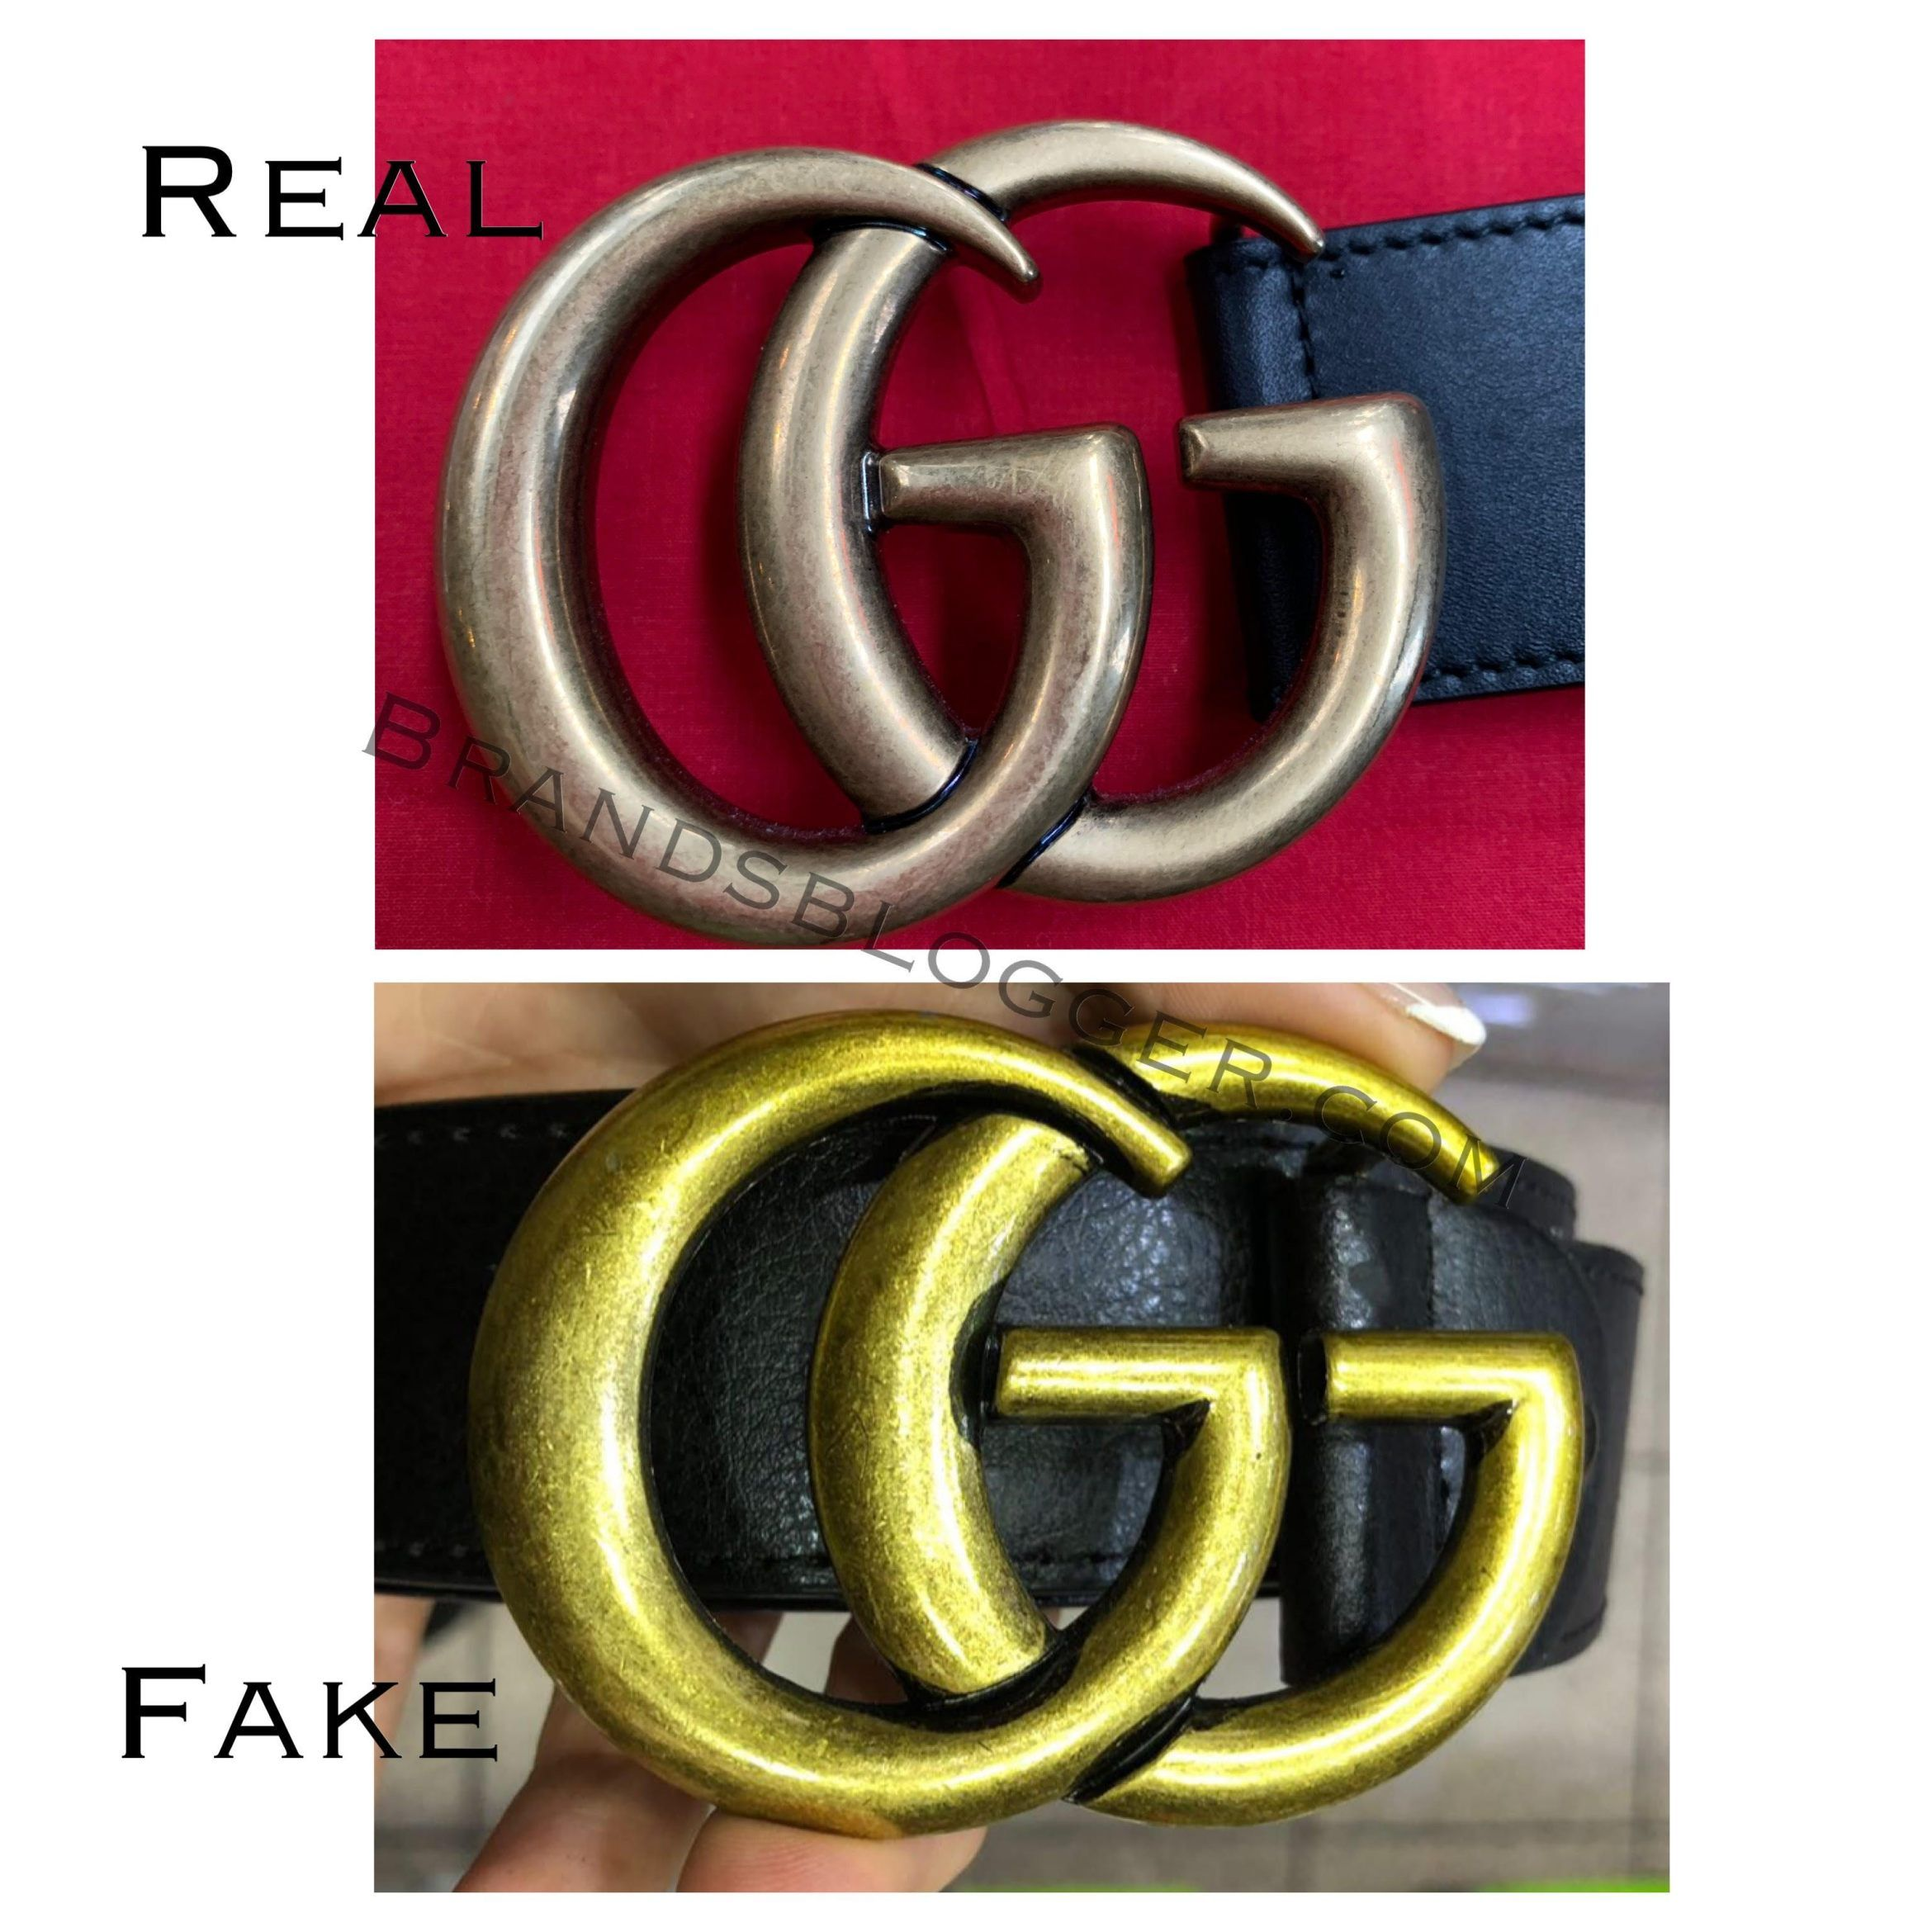 How to spot a fake double g gucci belt gucci belt gucci